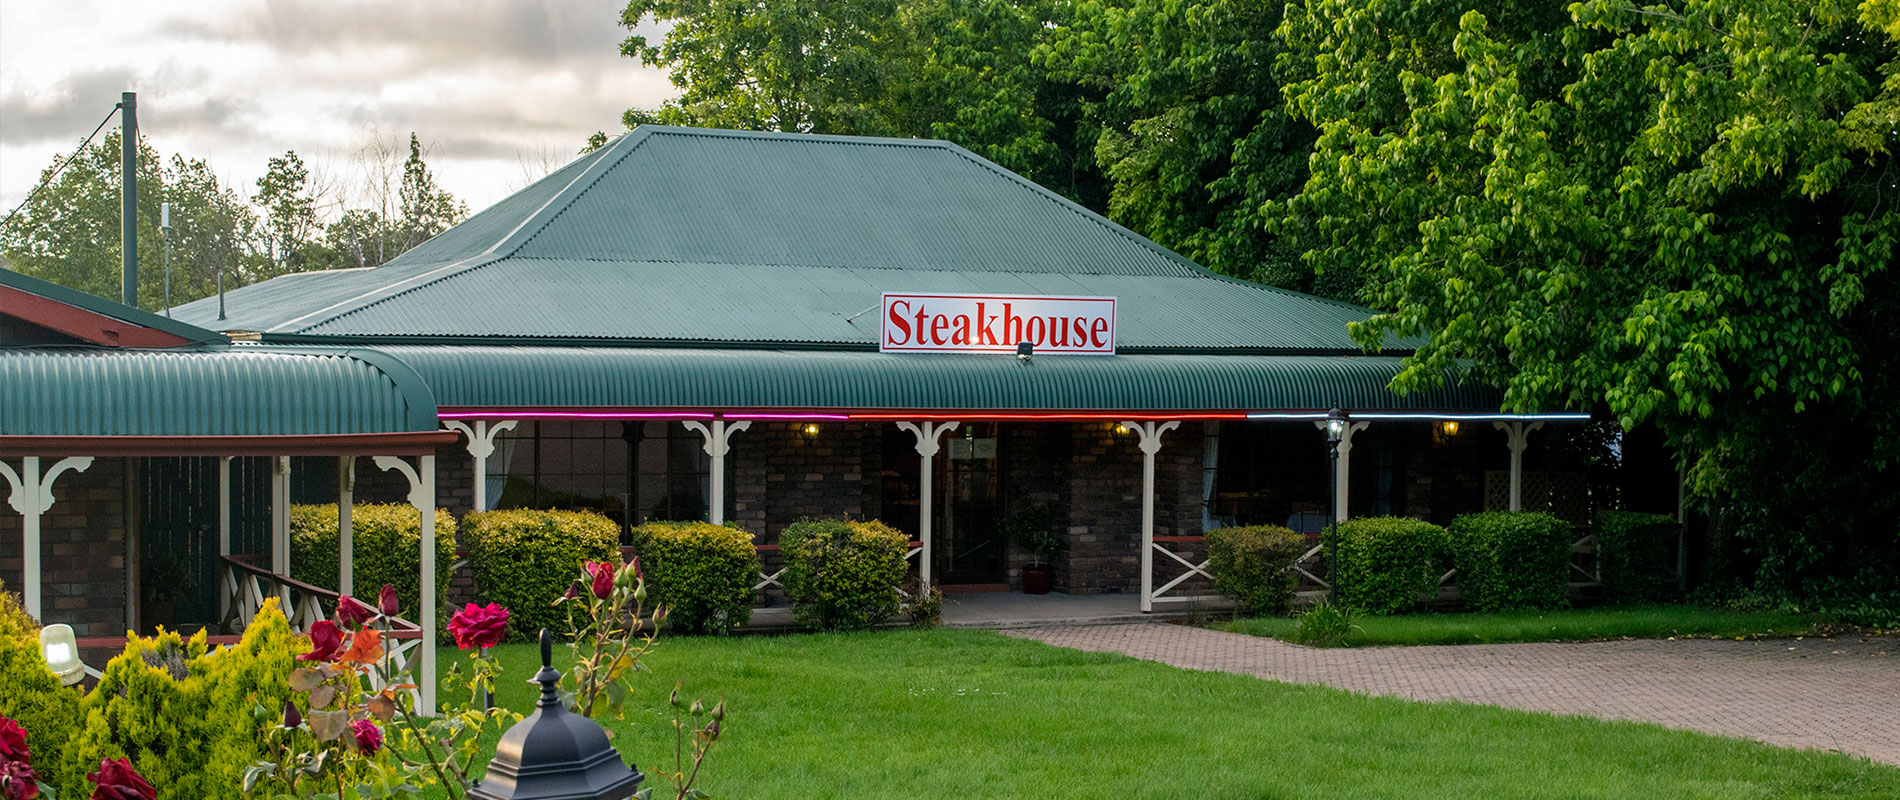 Hereford Steakhouse